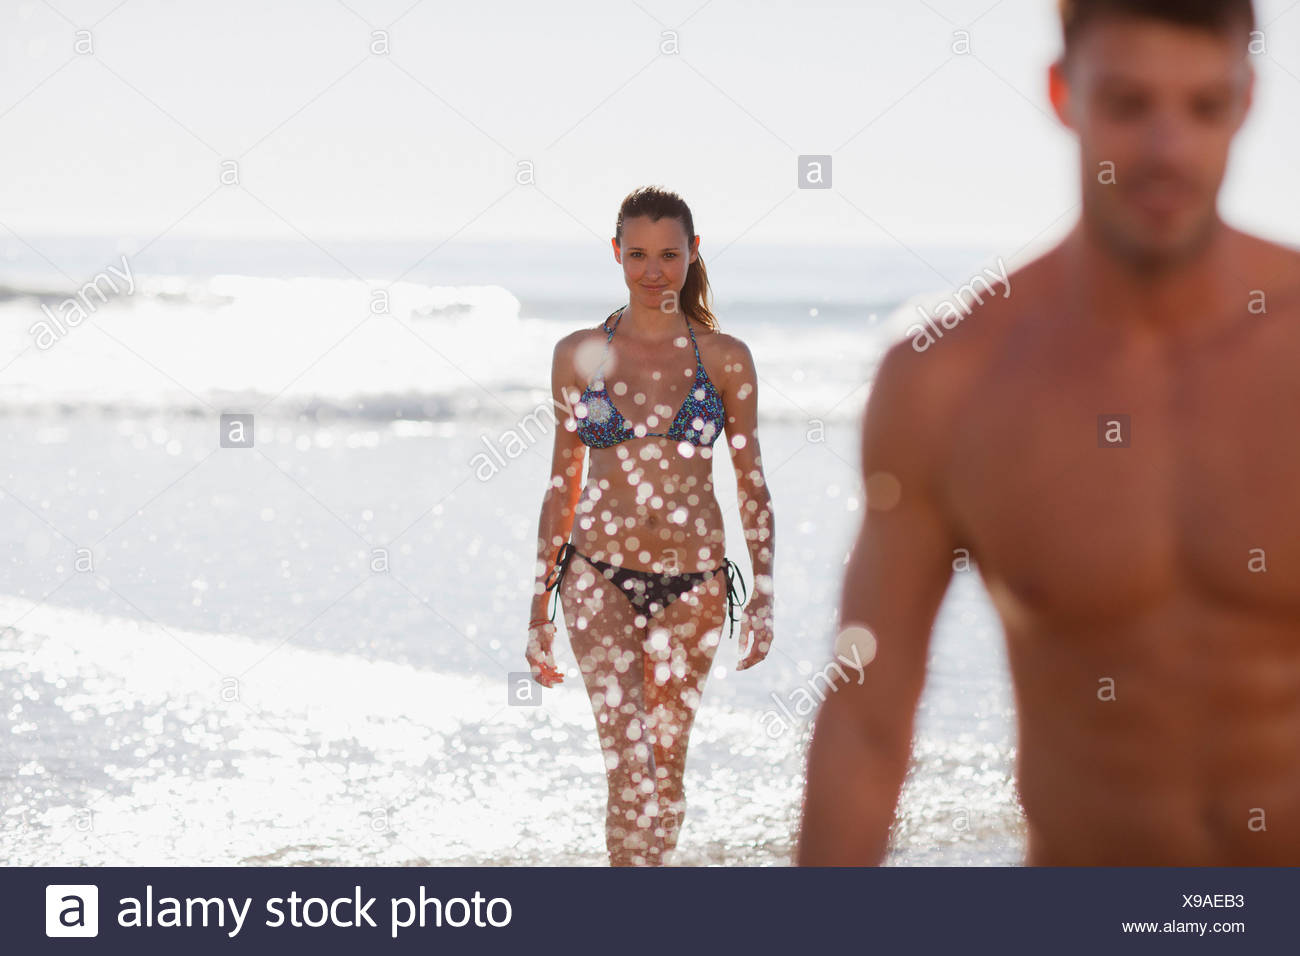 Woman in bikini walking in waves - Stock Image